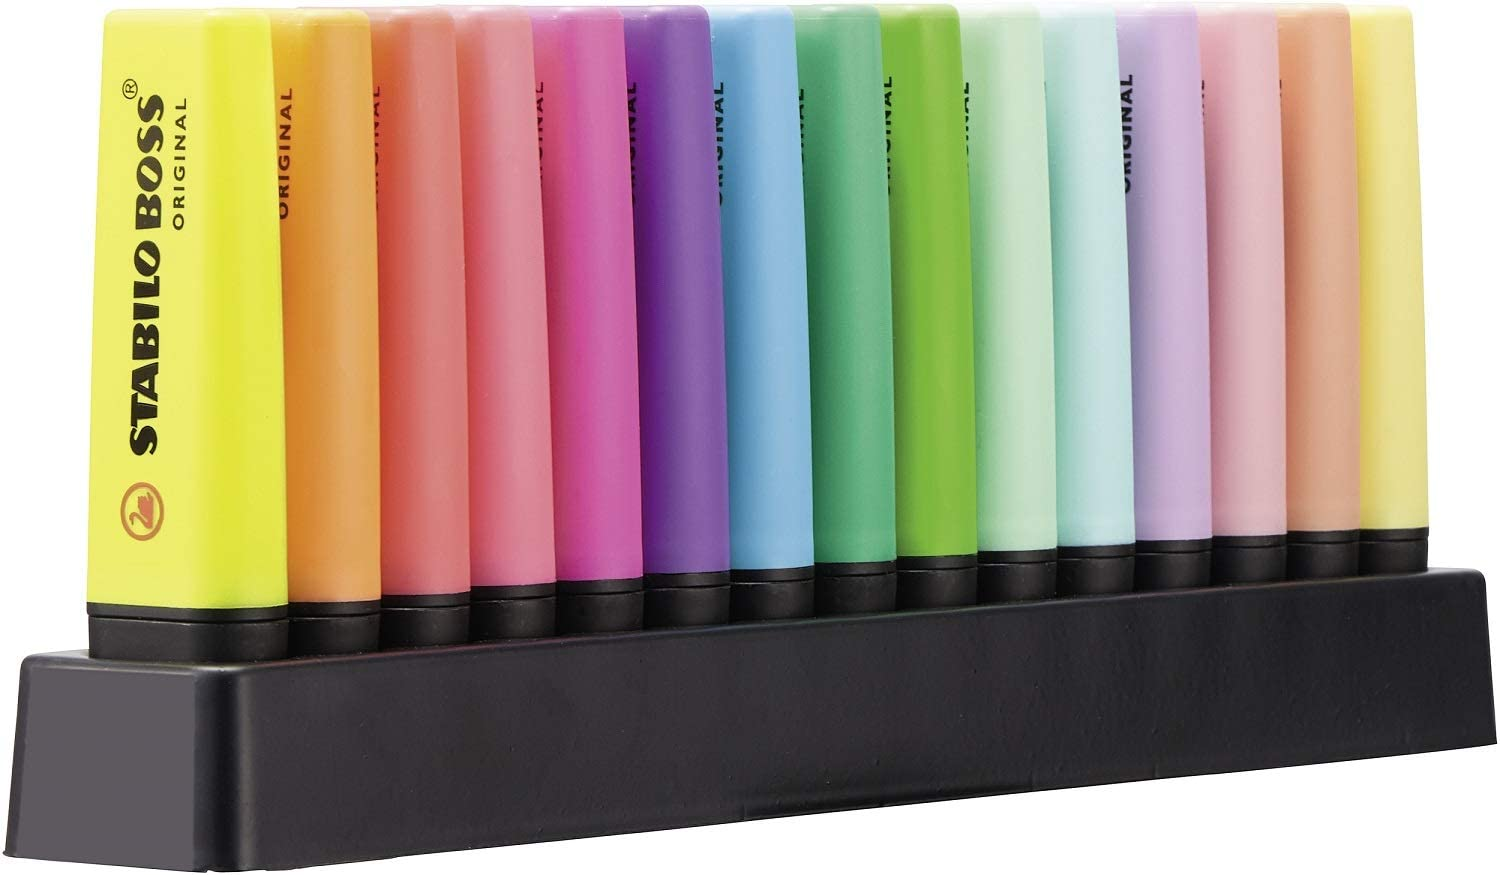 Stabilo Boss Highlighters Desk Set, 15 Colors